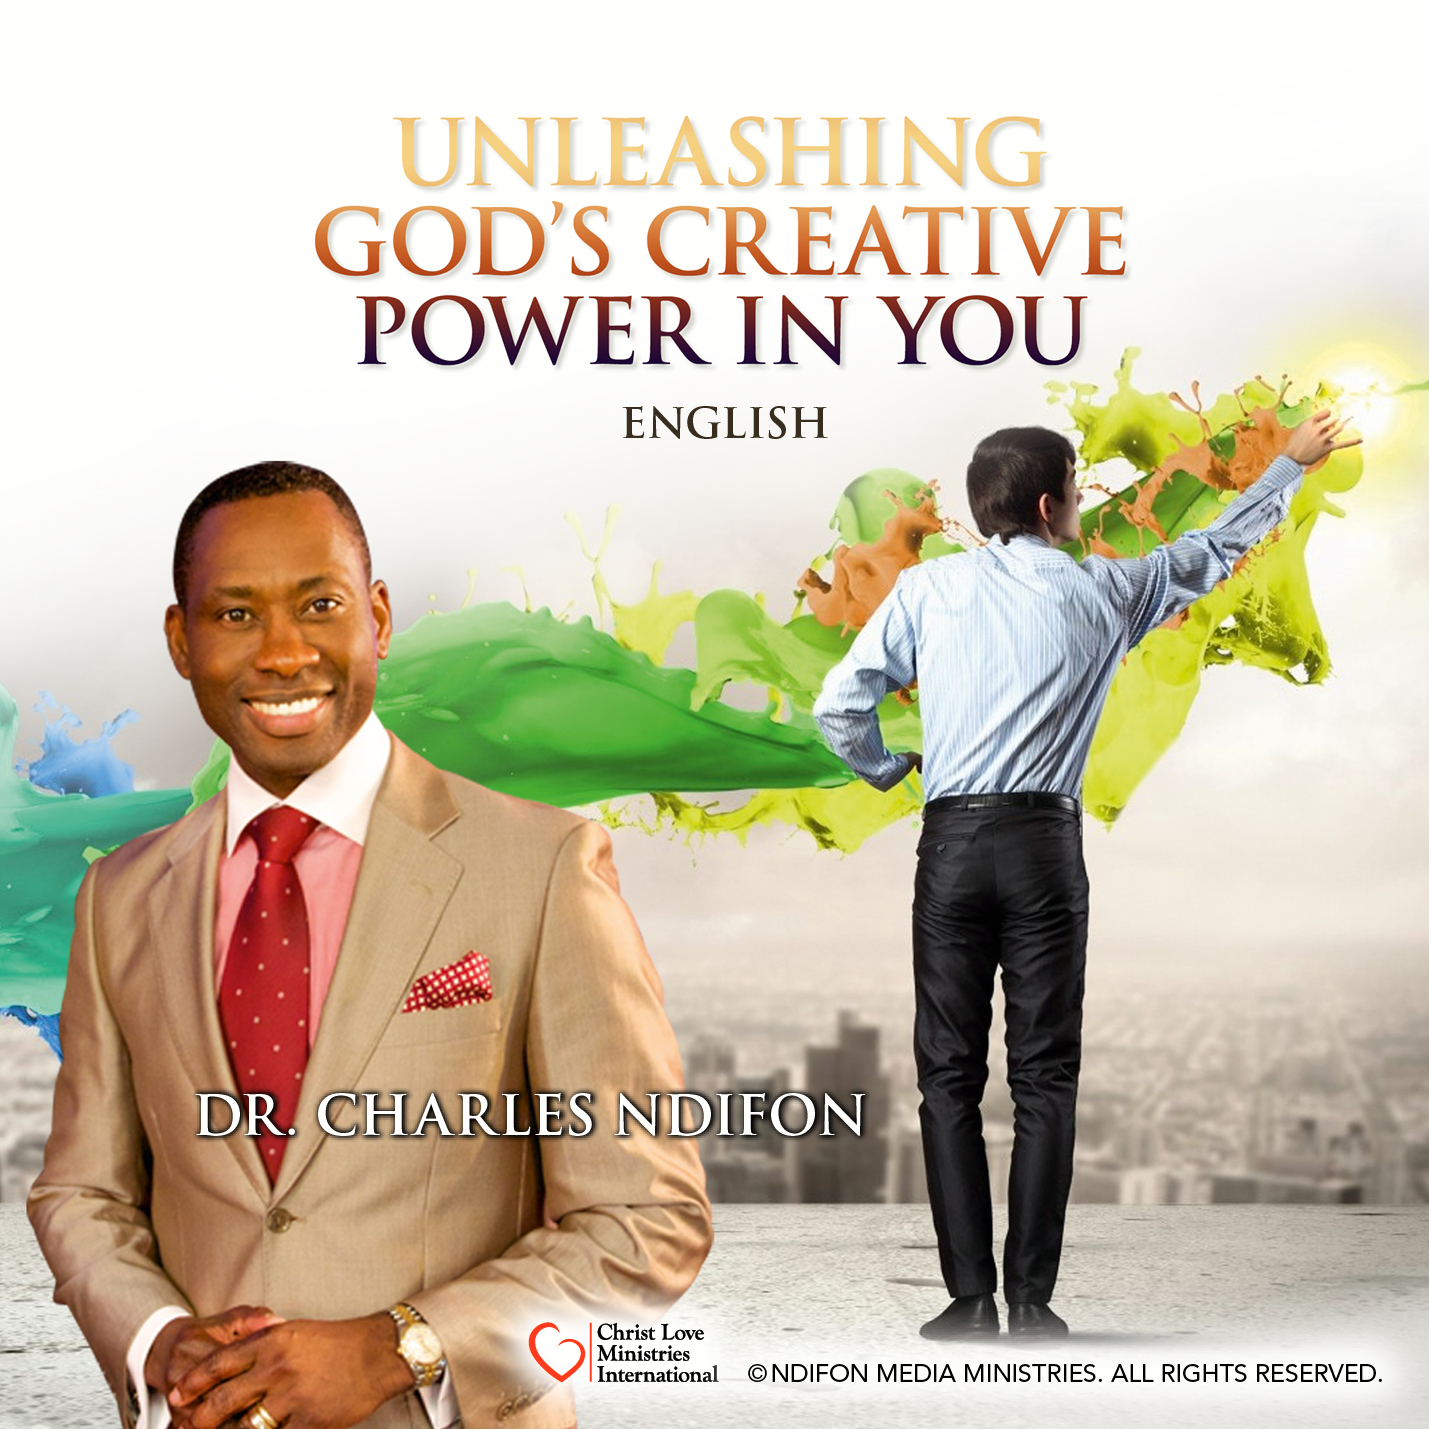 Unleashing God's Creative Power in You